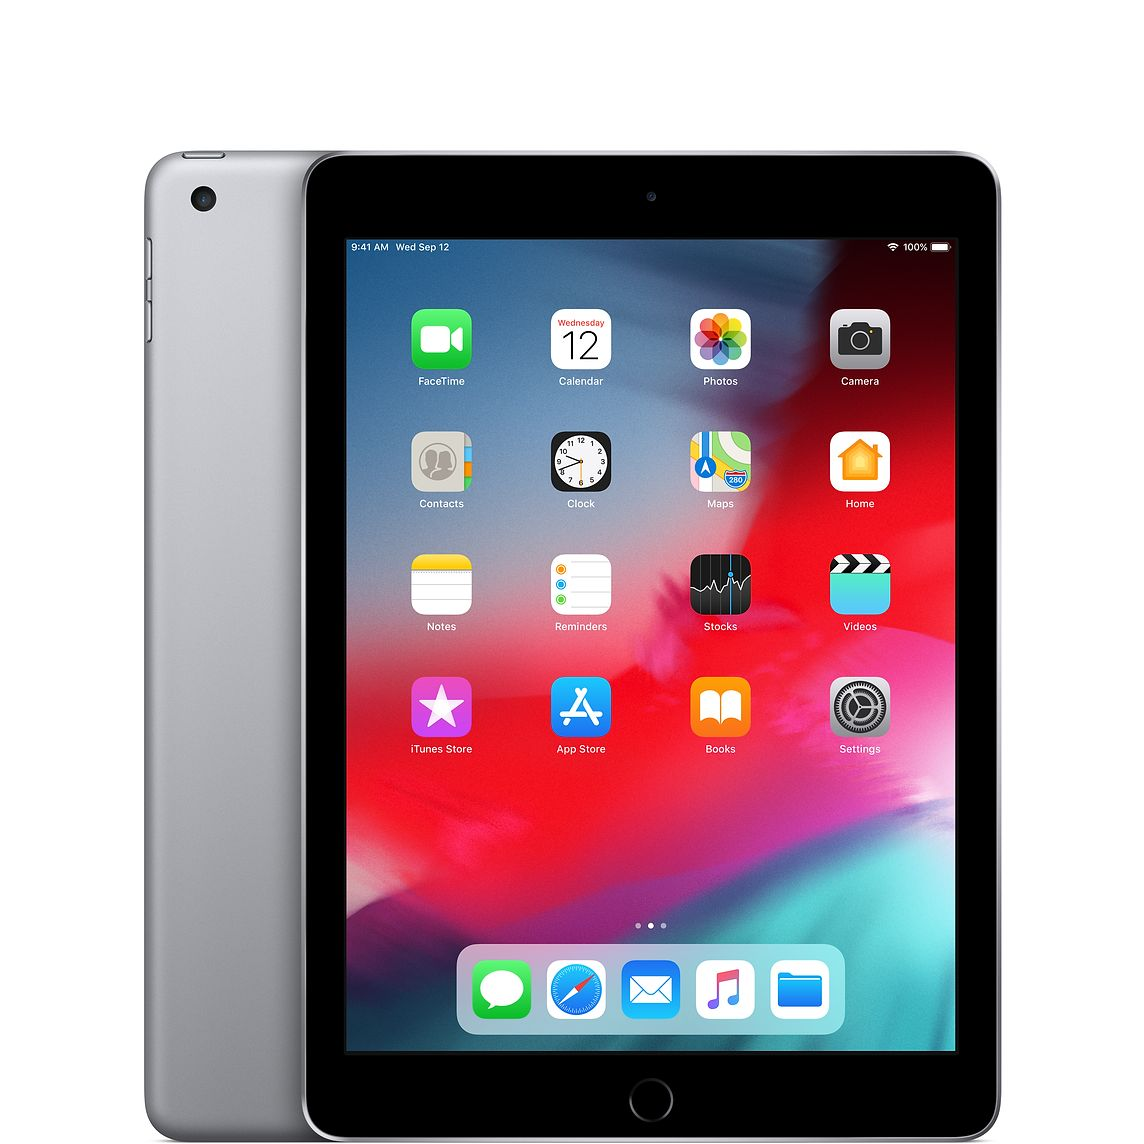 Amazon offers 9″ 32GB WiFi iPads for $249, $80 off MSRP, for Green